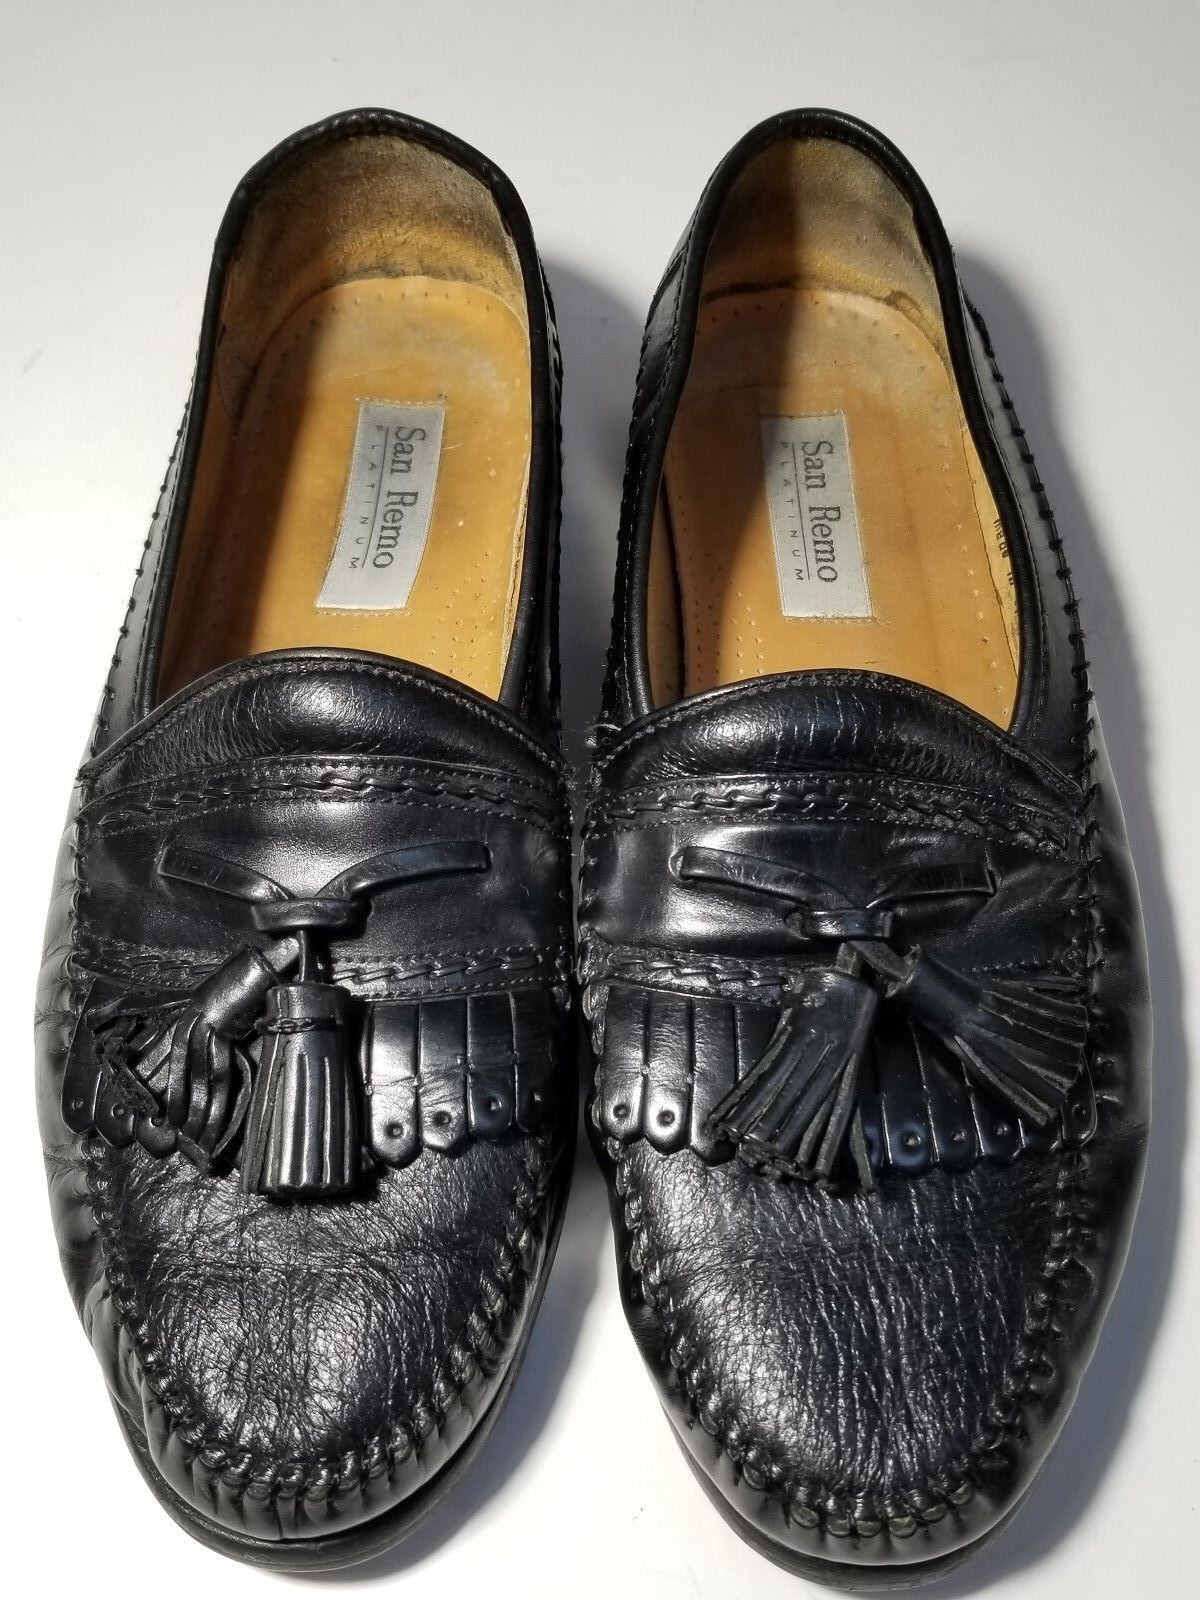 San Remo Platinum Men's Black Leather shoes W Tassels Made in Spain Size 9